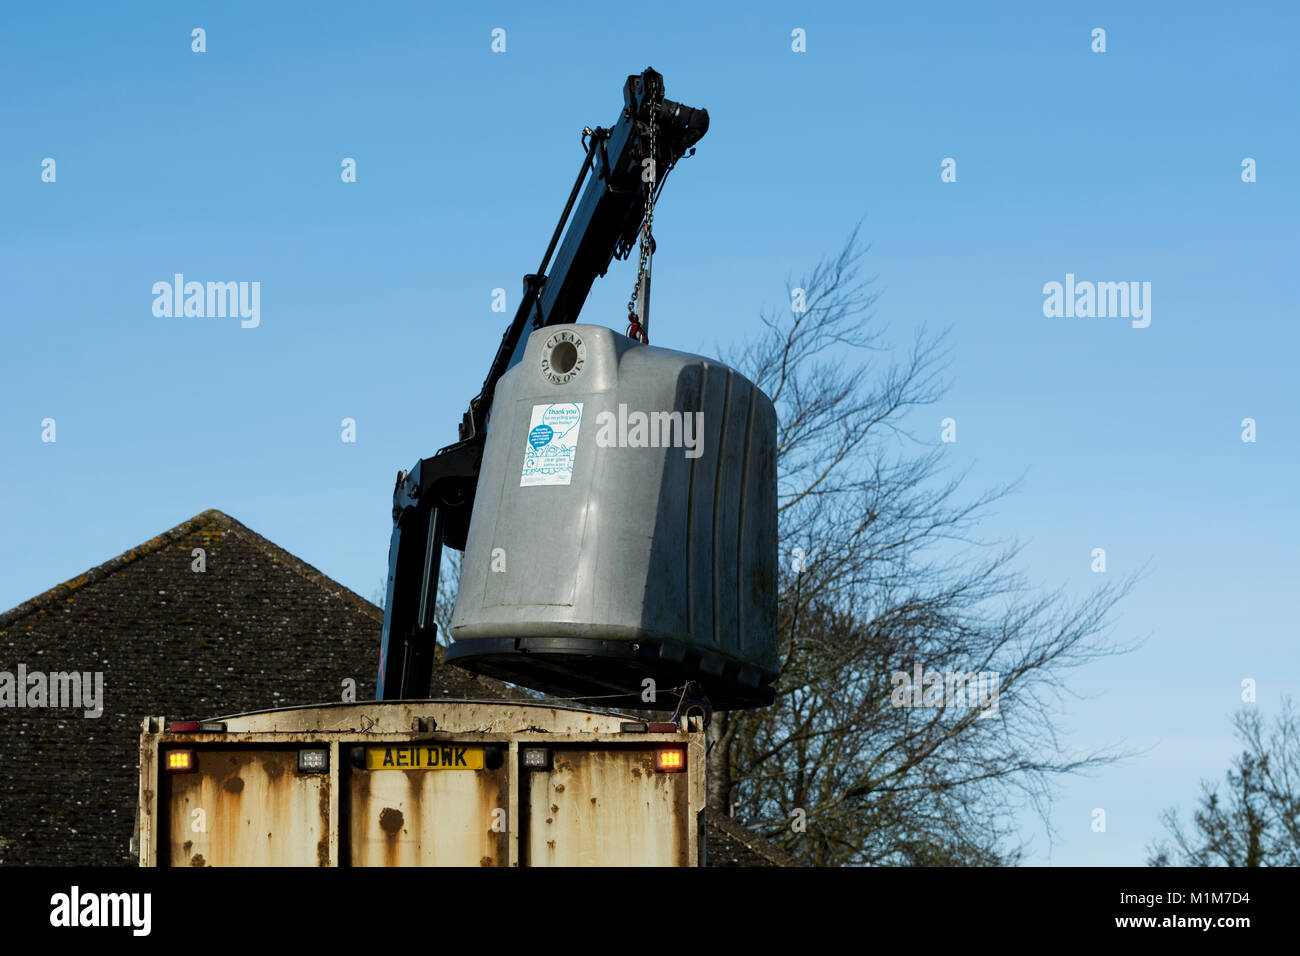 Glass recycling bin being emptied, Oxfordshire, UK - Stock Image